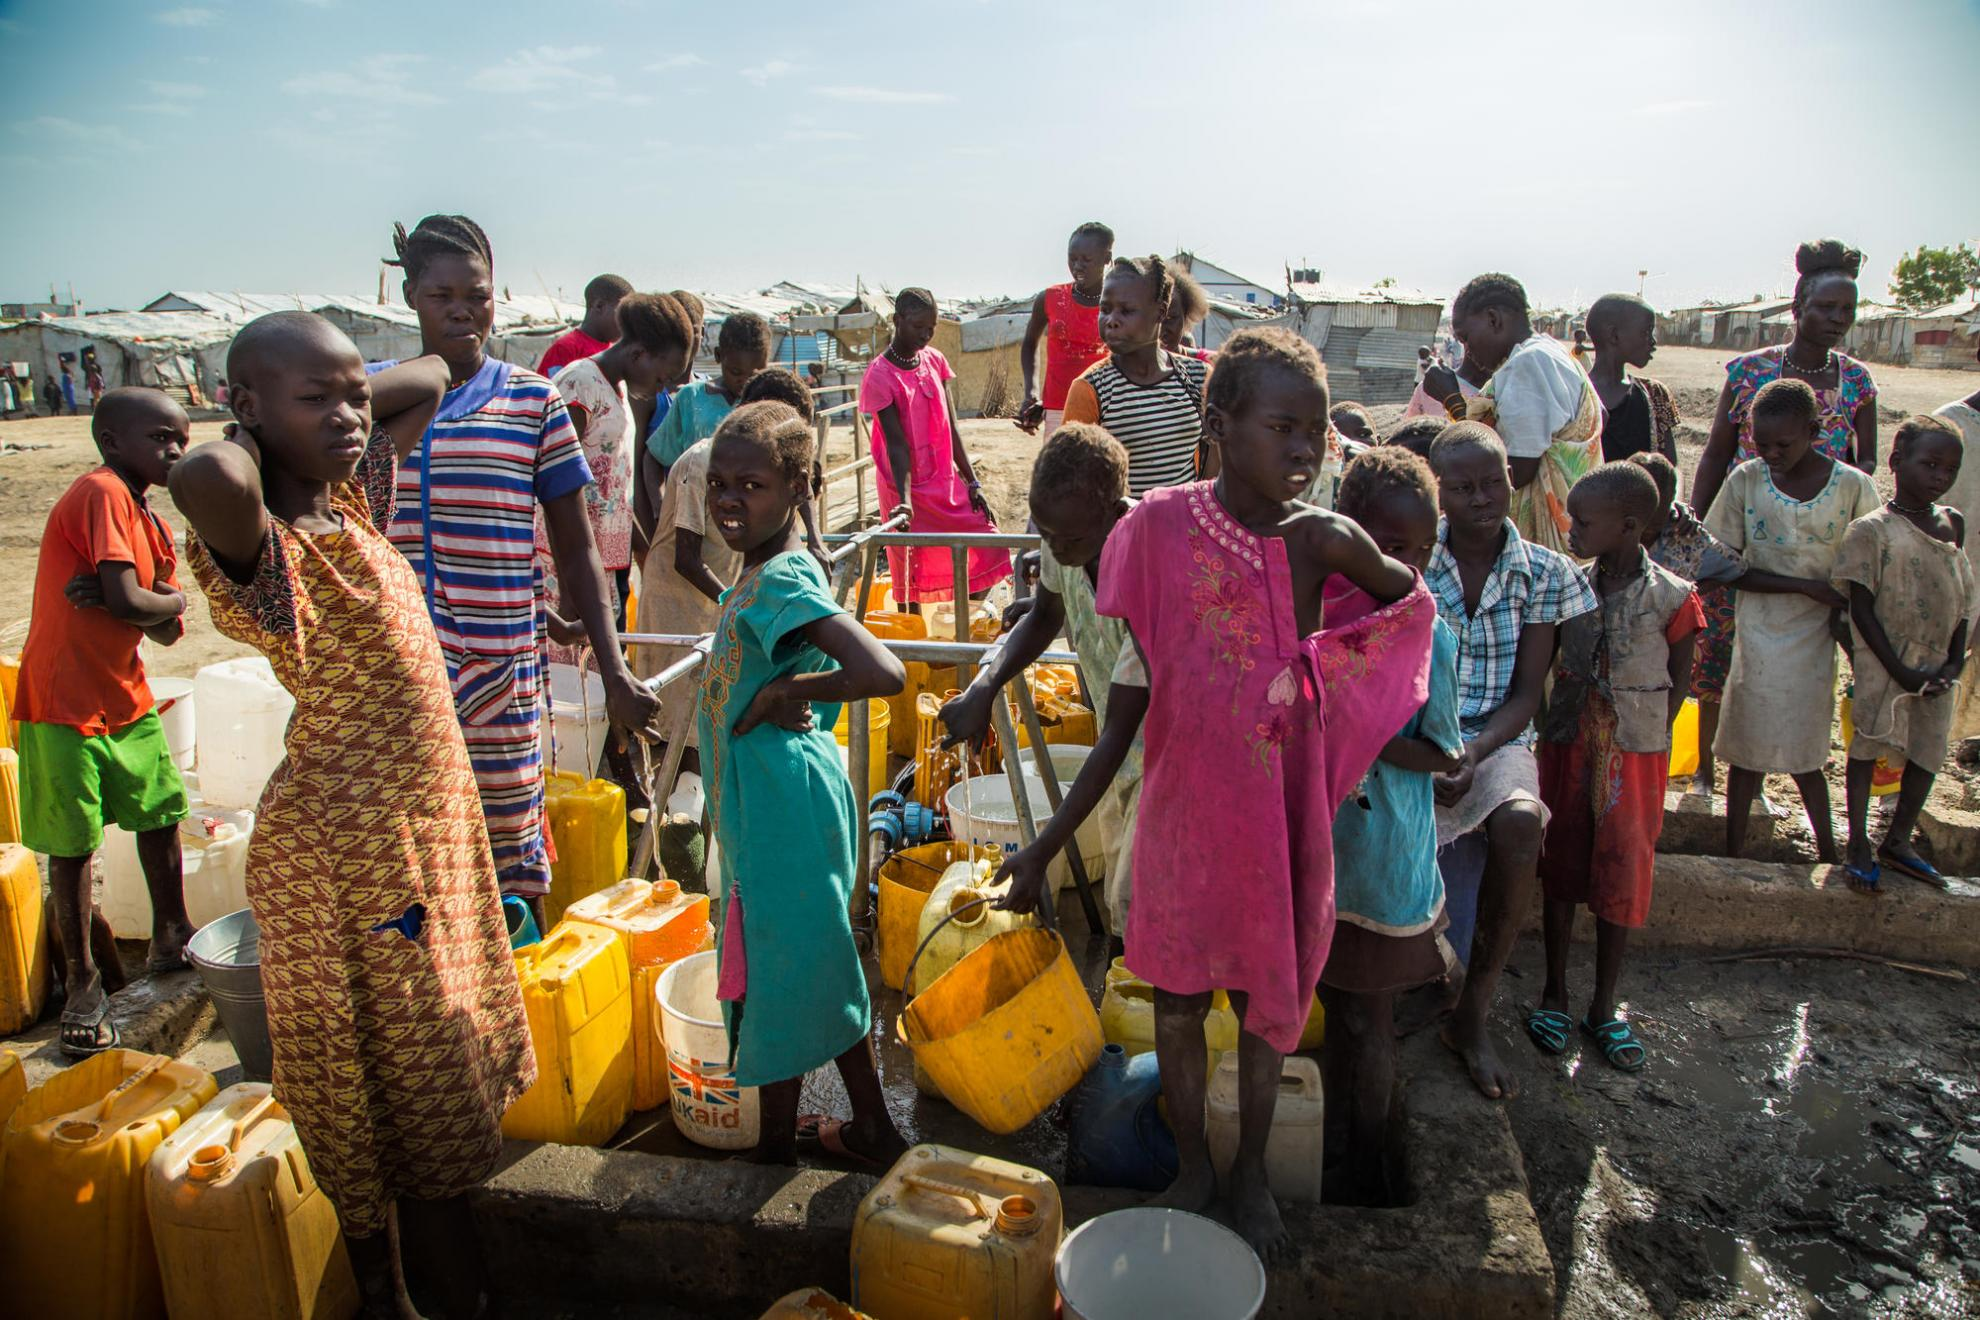 Crowded conditions as women and children queue for water in a PoC camp